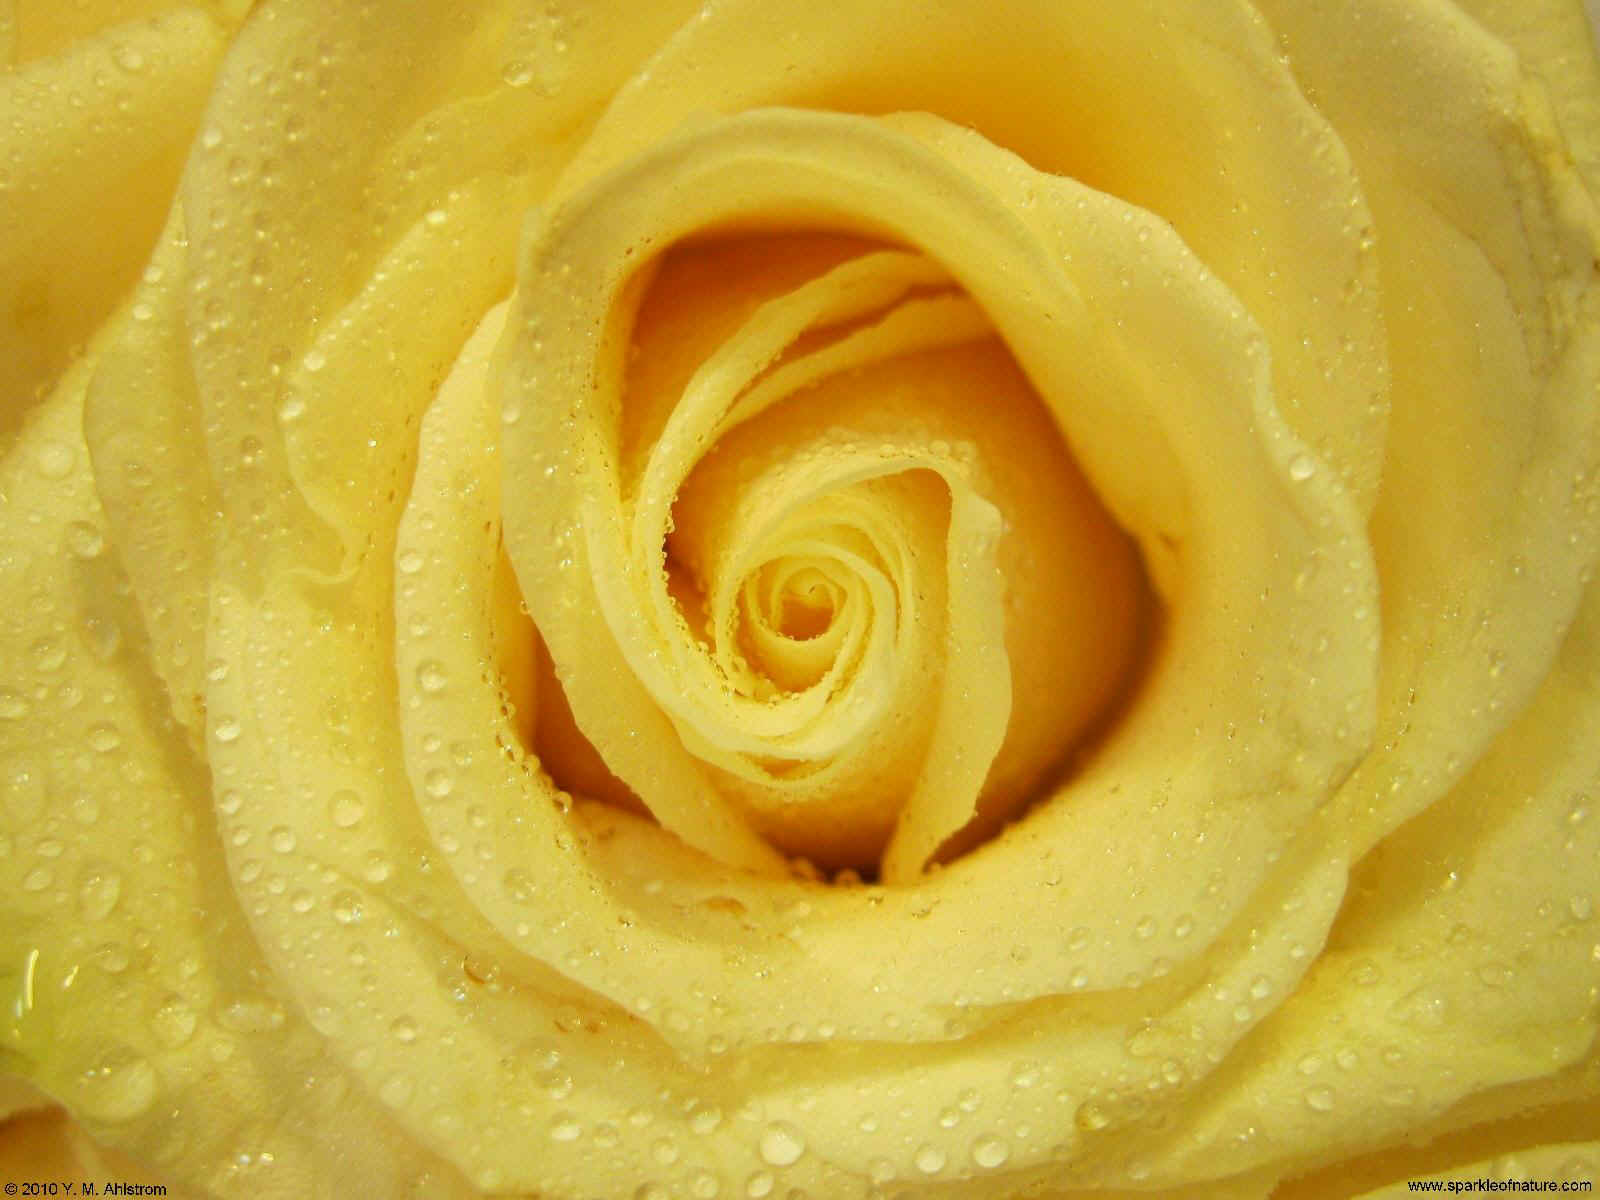 20511 buttercream yellow rose 1600x1200.jpg (184283 bytes)